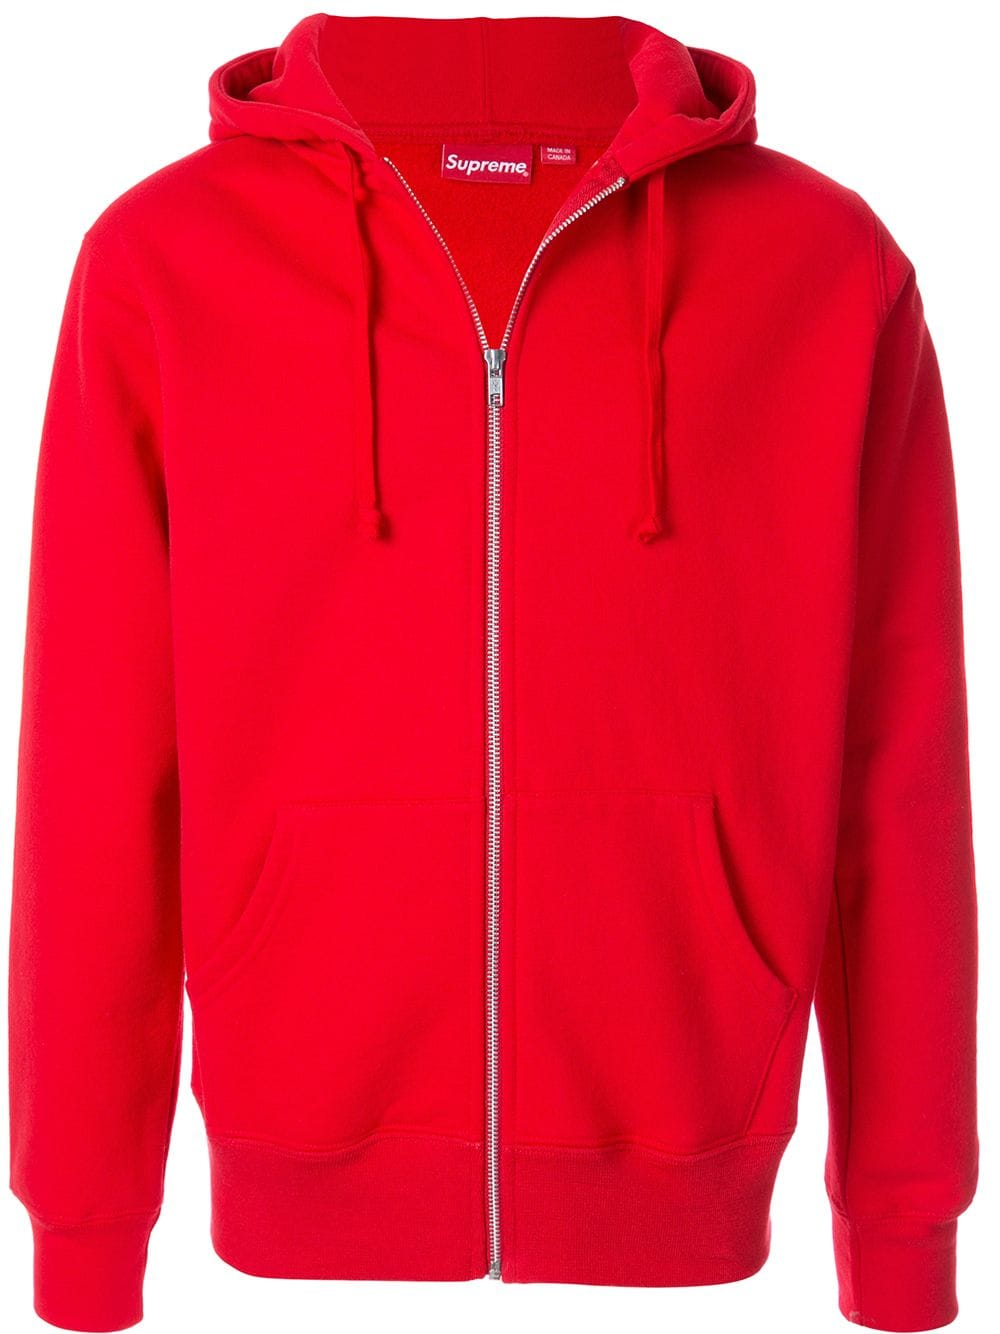 Supreme Rib Zip Up Hoodie In Red | ModeSens | Hoodies, Zip